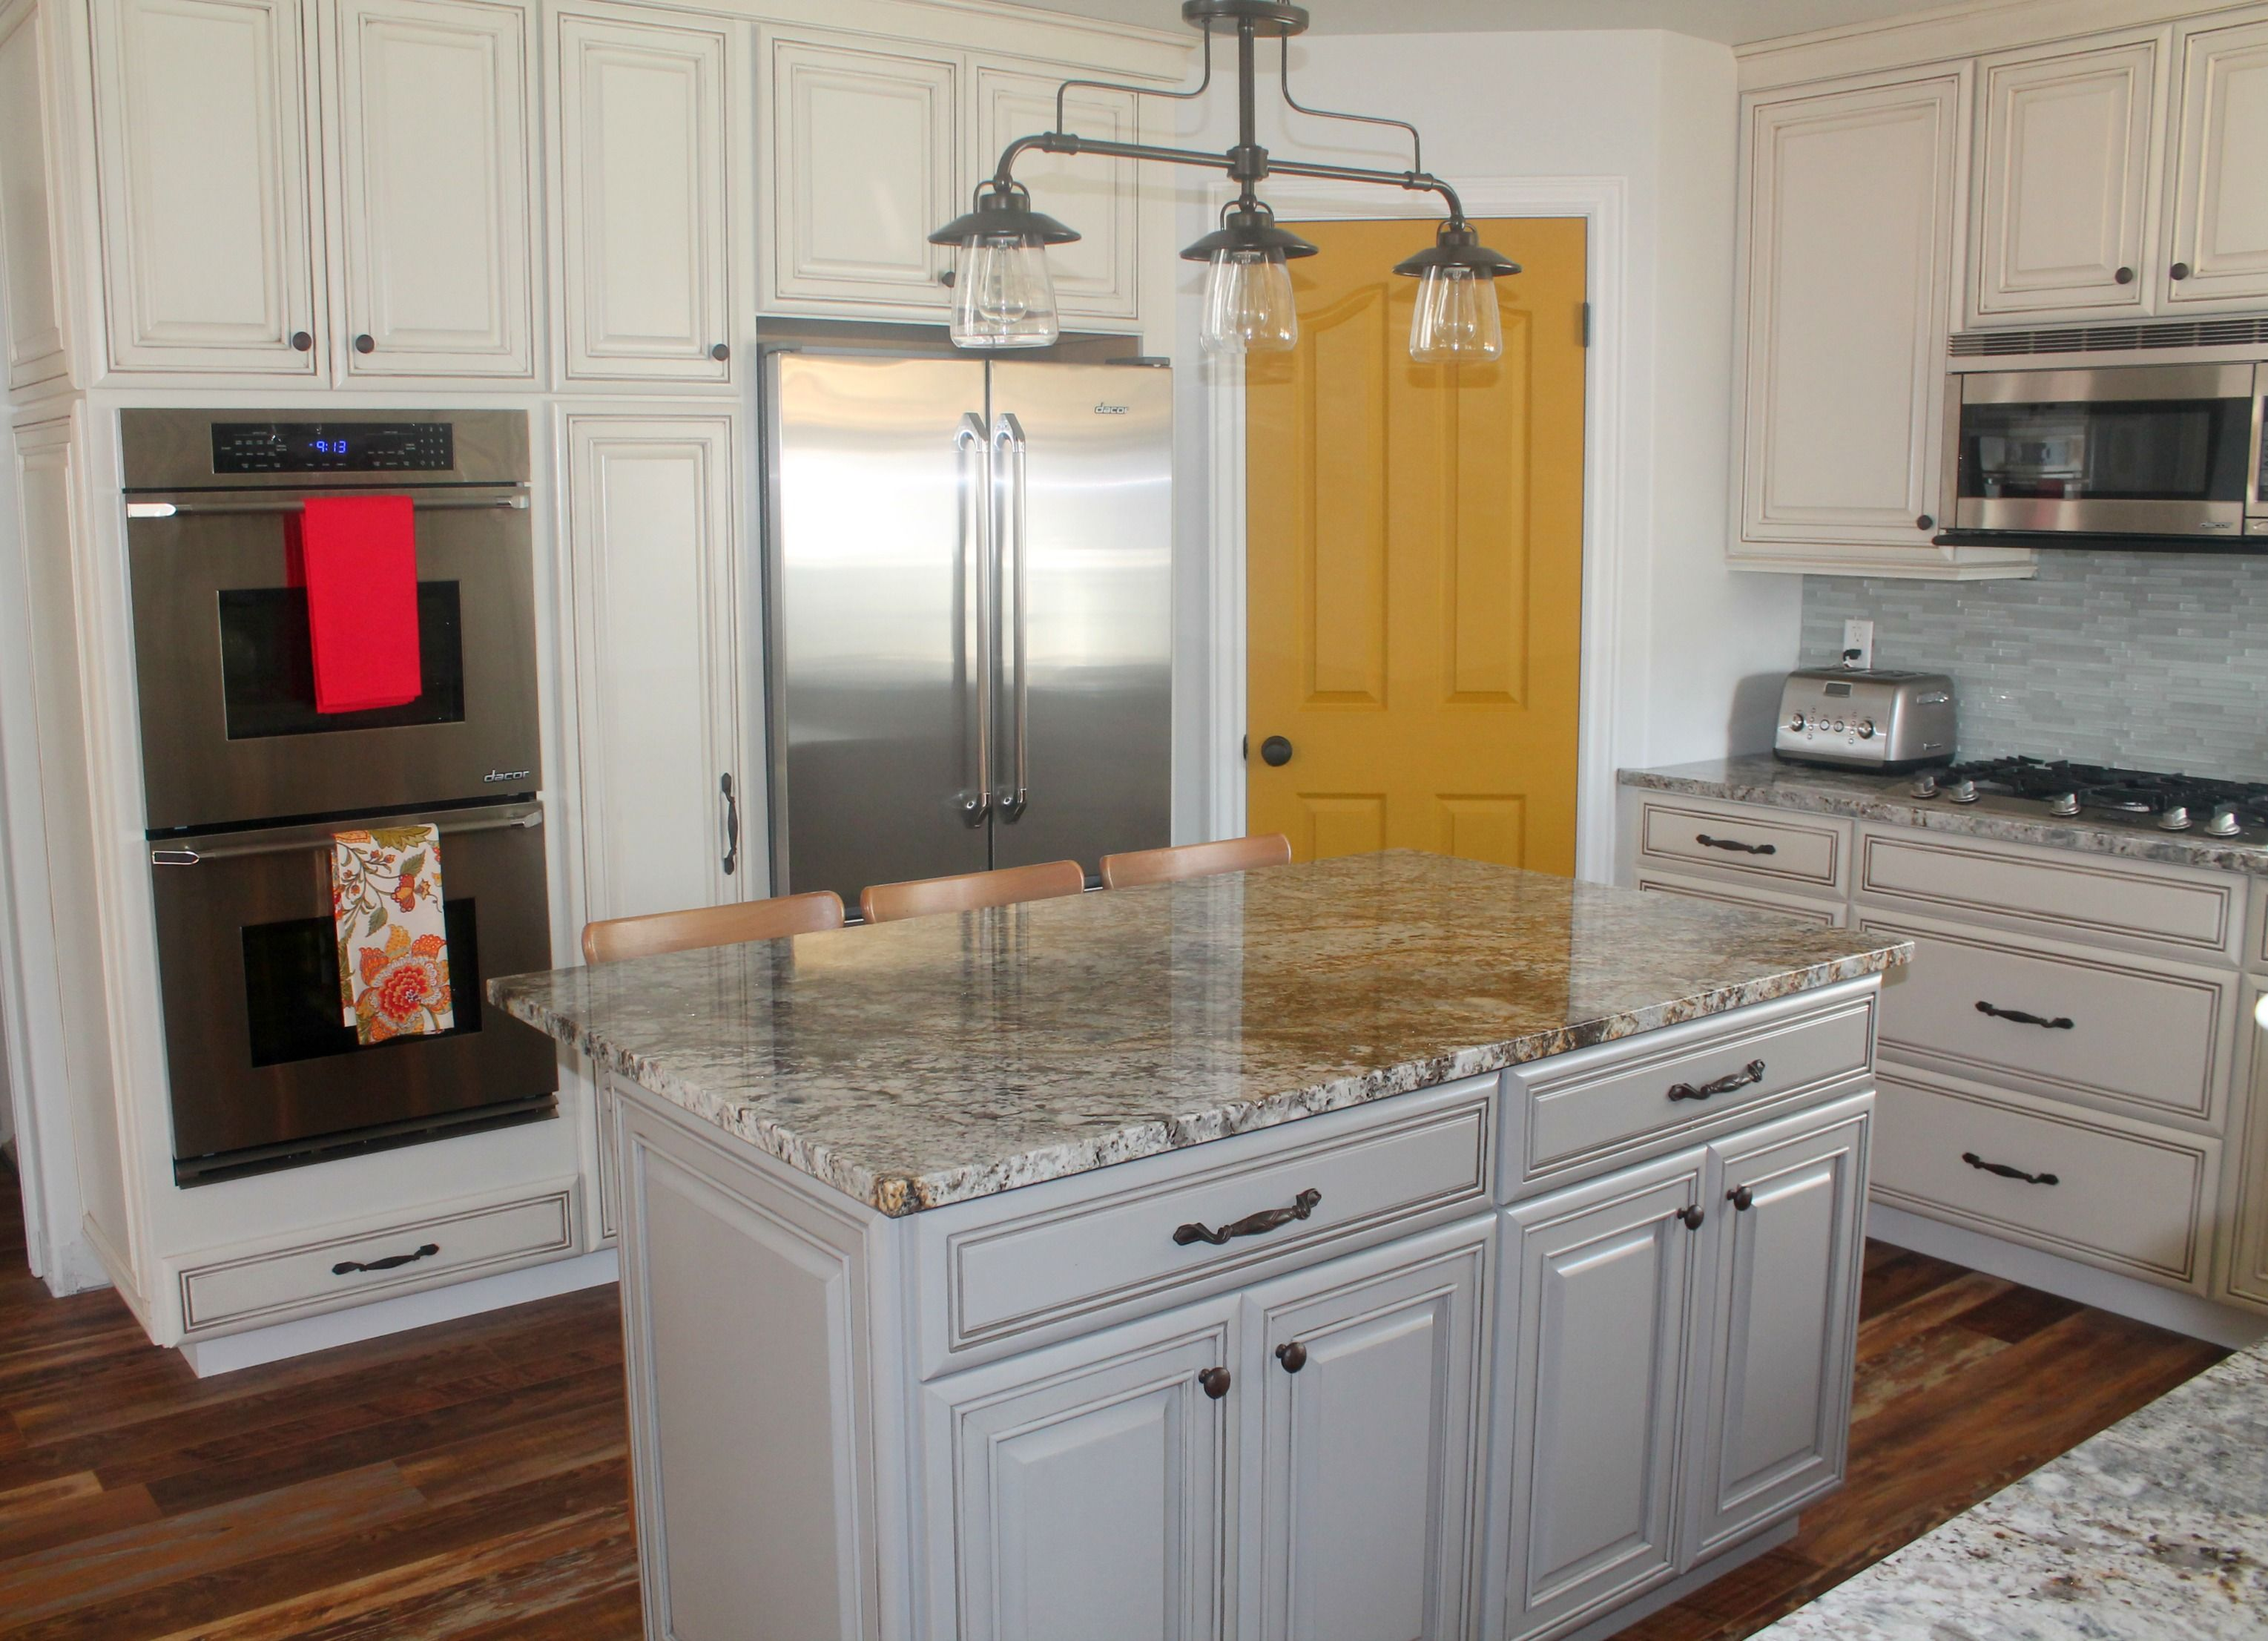 Singer kitchens cabinets to go new orleans stocked cabinets singer - Our Selena Style Diamond Cabinets Give Elyse S Kitchen A Whole New Look